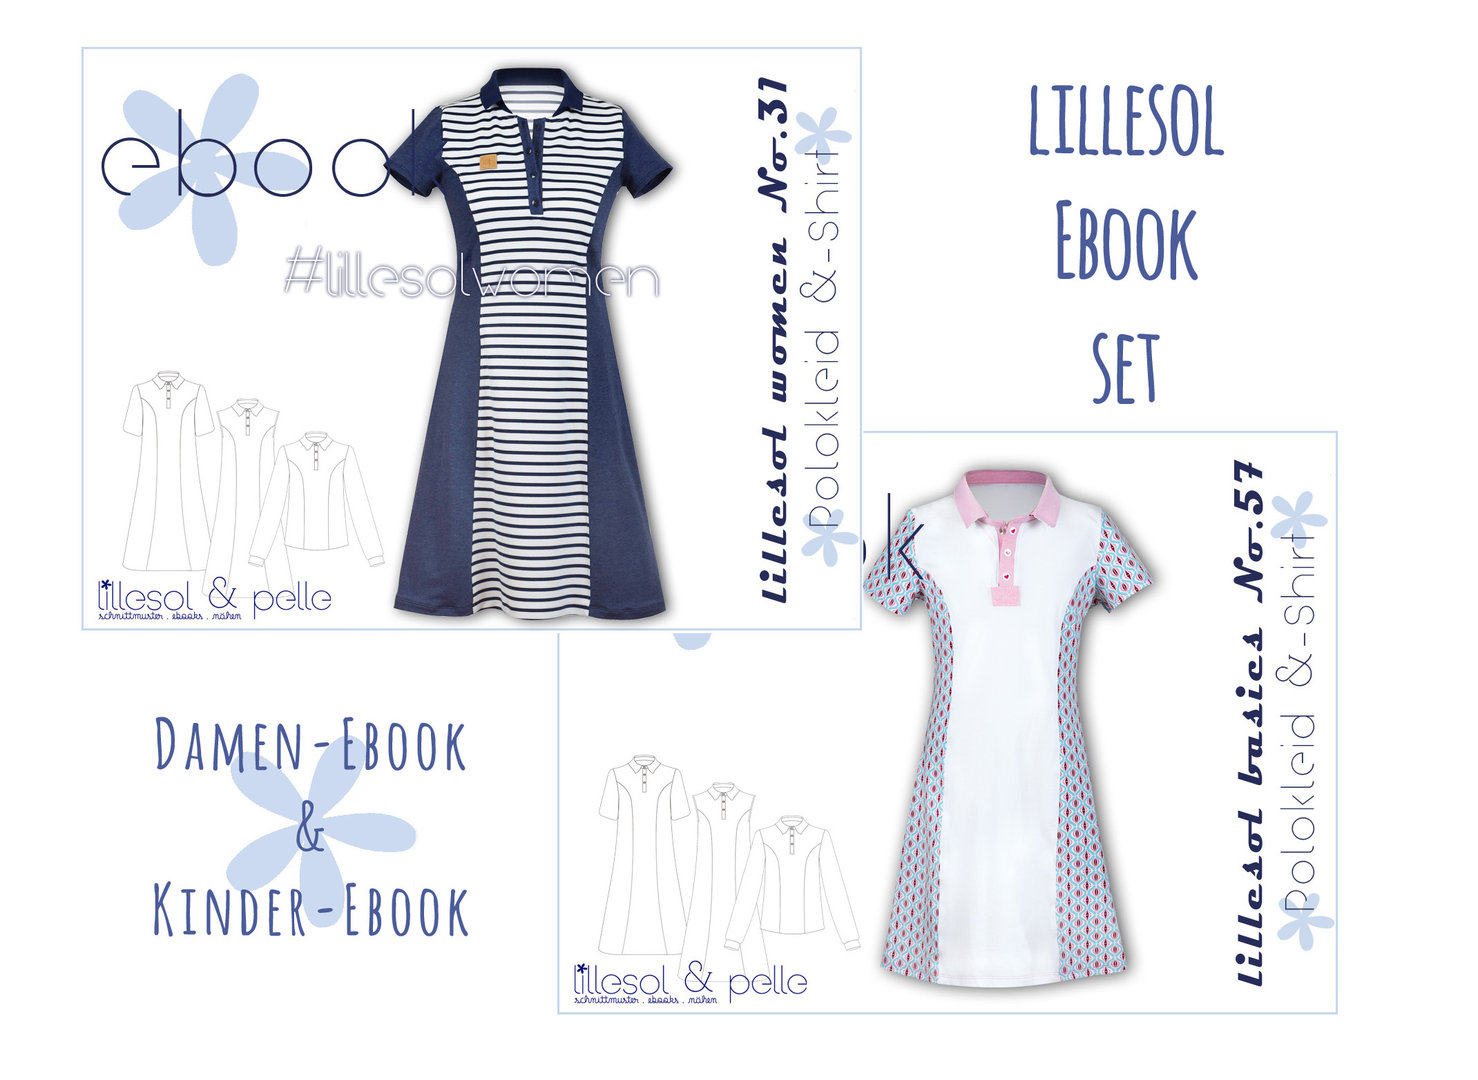 lillesol ebook set basics No.57 und women No.31